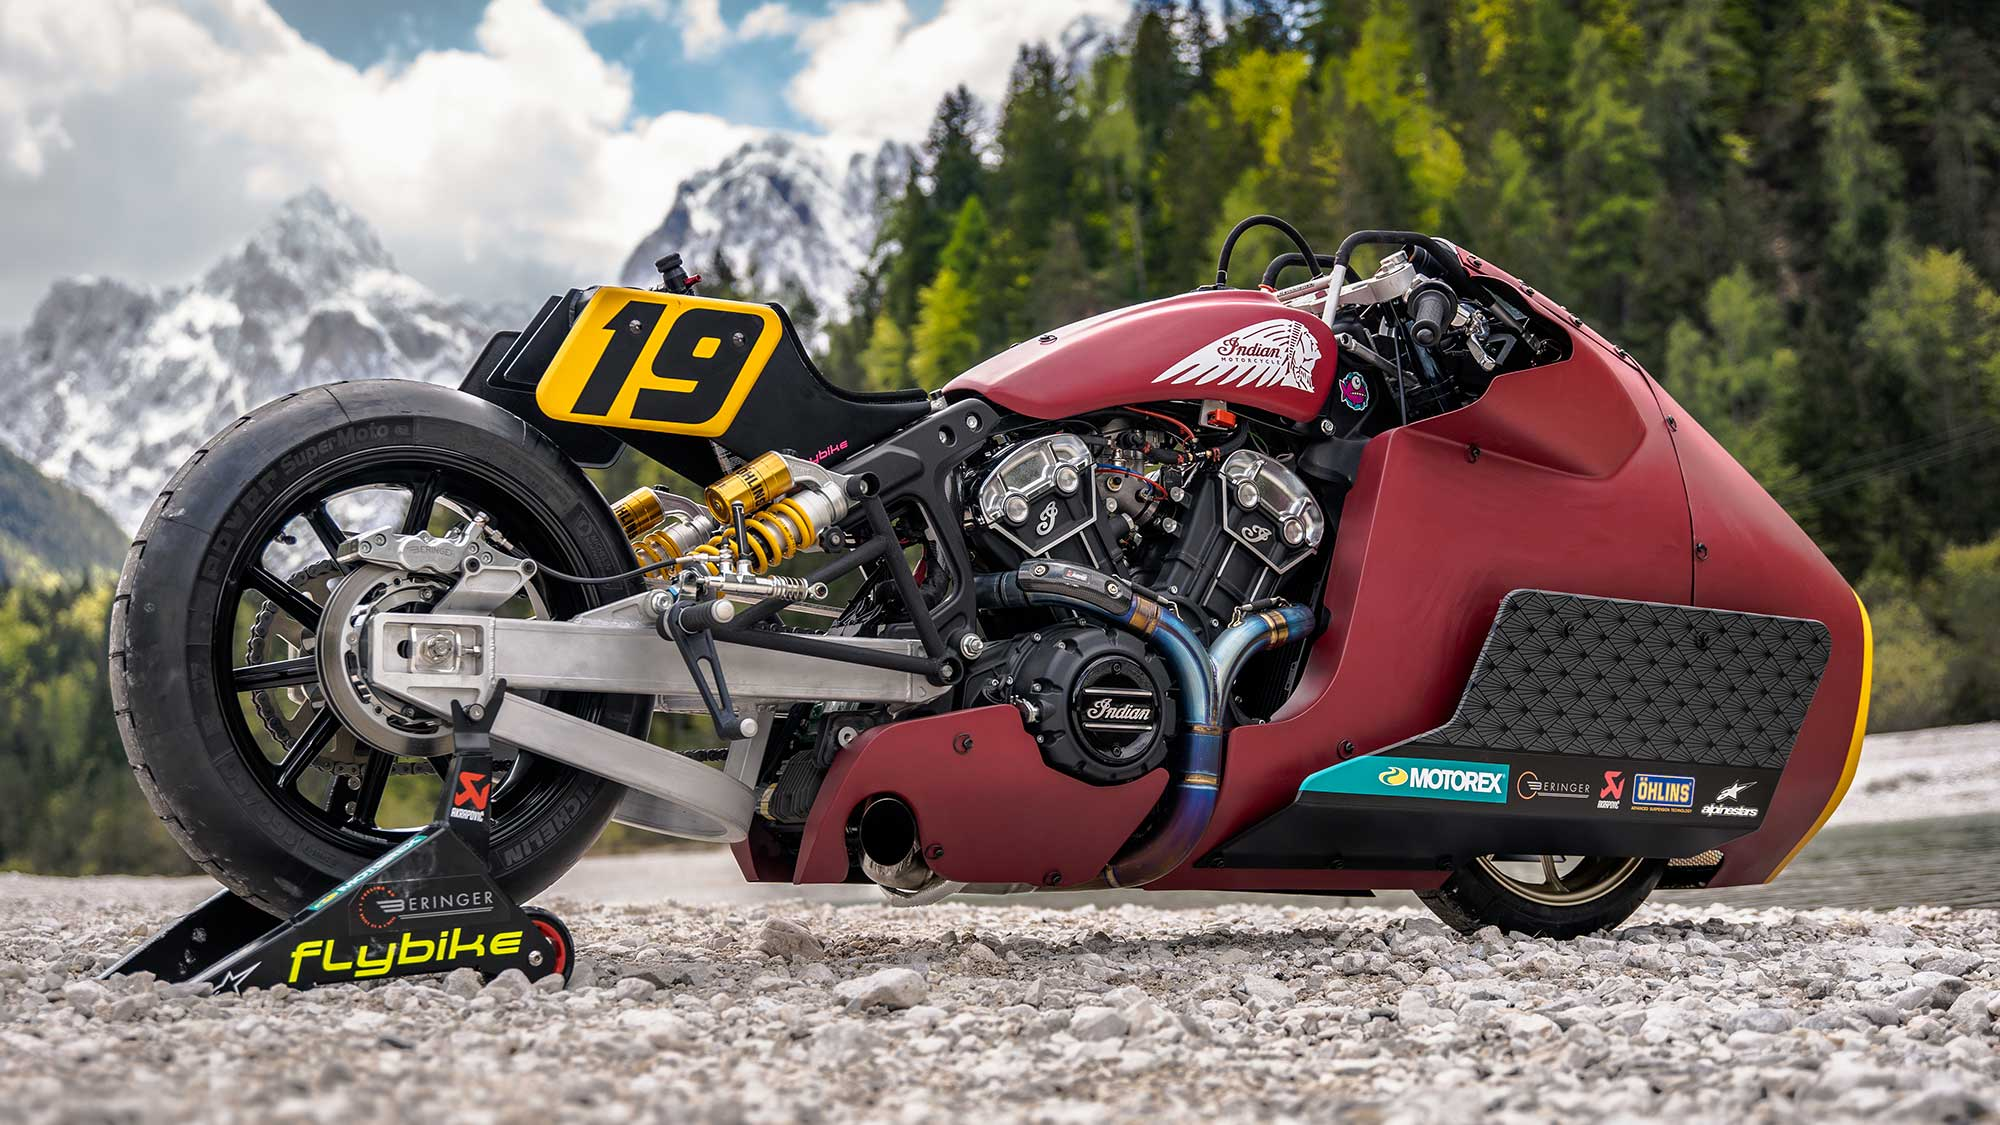 Jaw Dropping Custom Indian Scout Bobber From 2019 Gets Upgraded To Take On Ice Lake Shouts